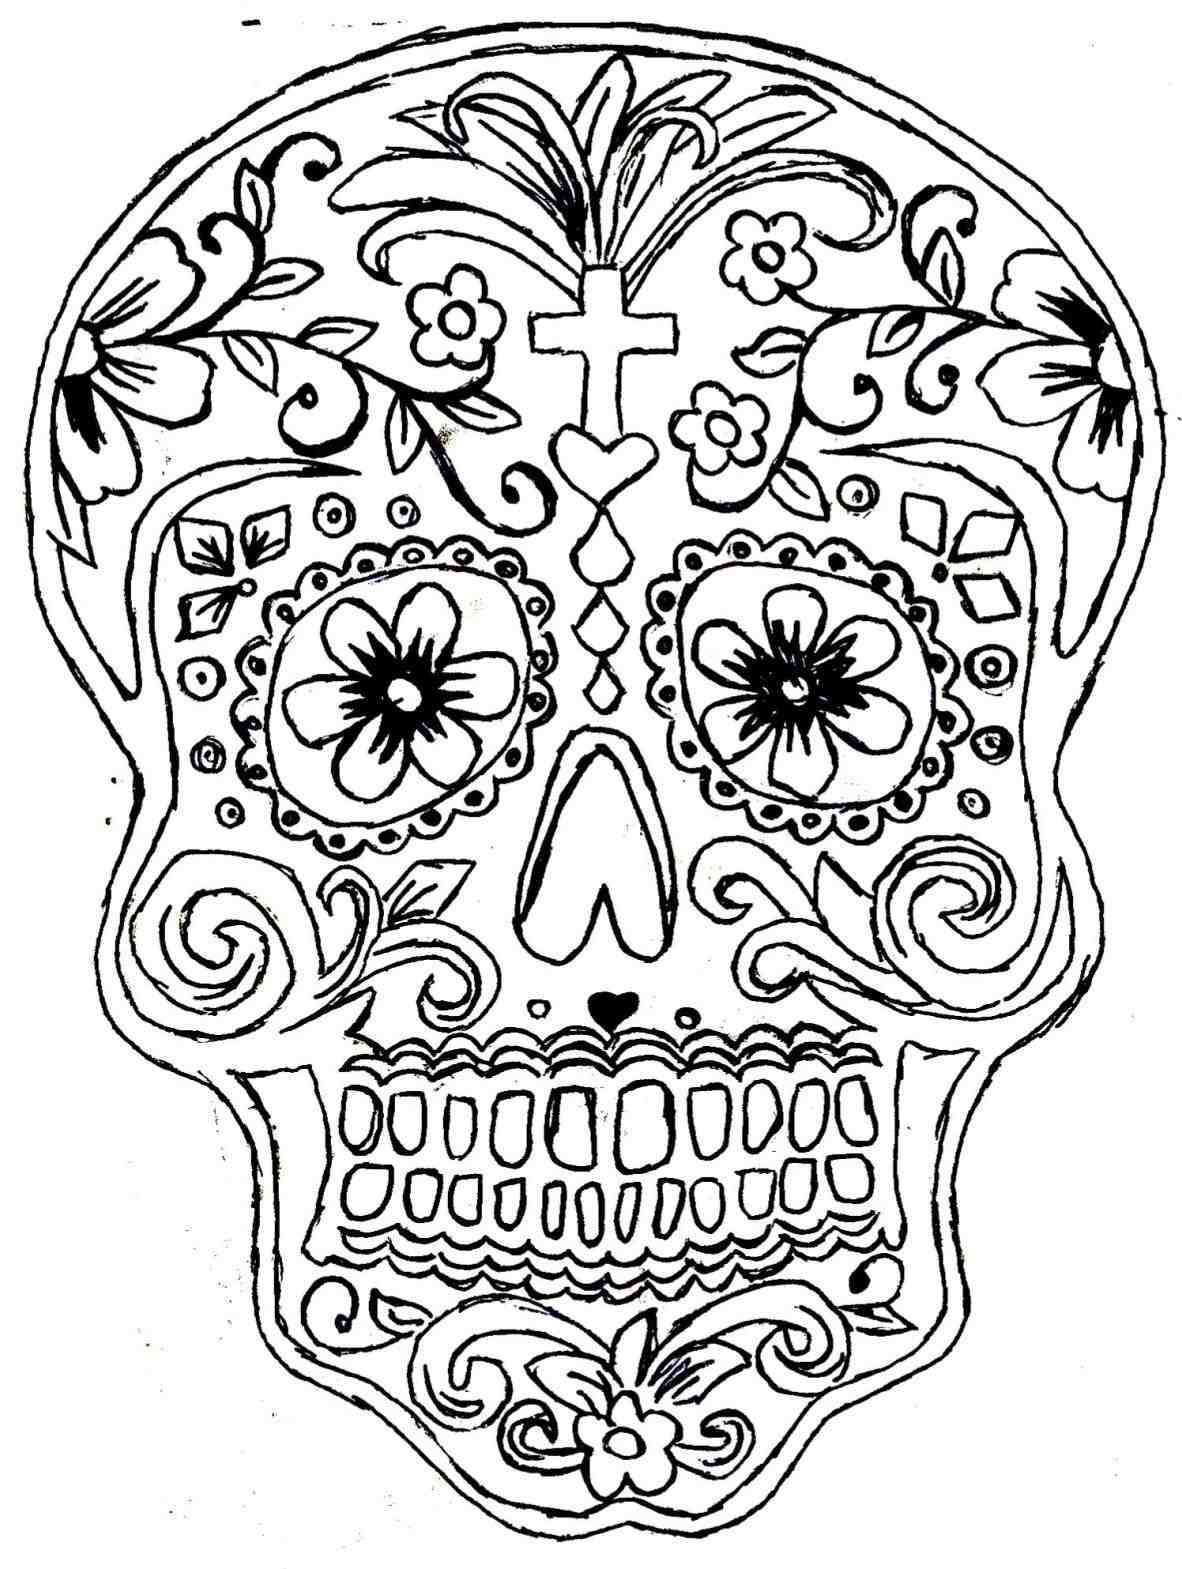 Tattoo Tumblr Drawing at GetDrawings.com | Free for personal use ...